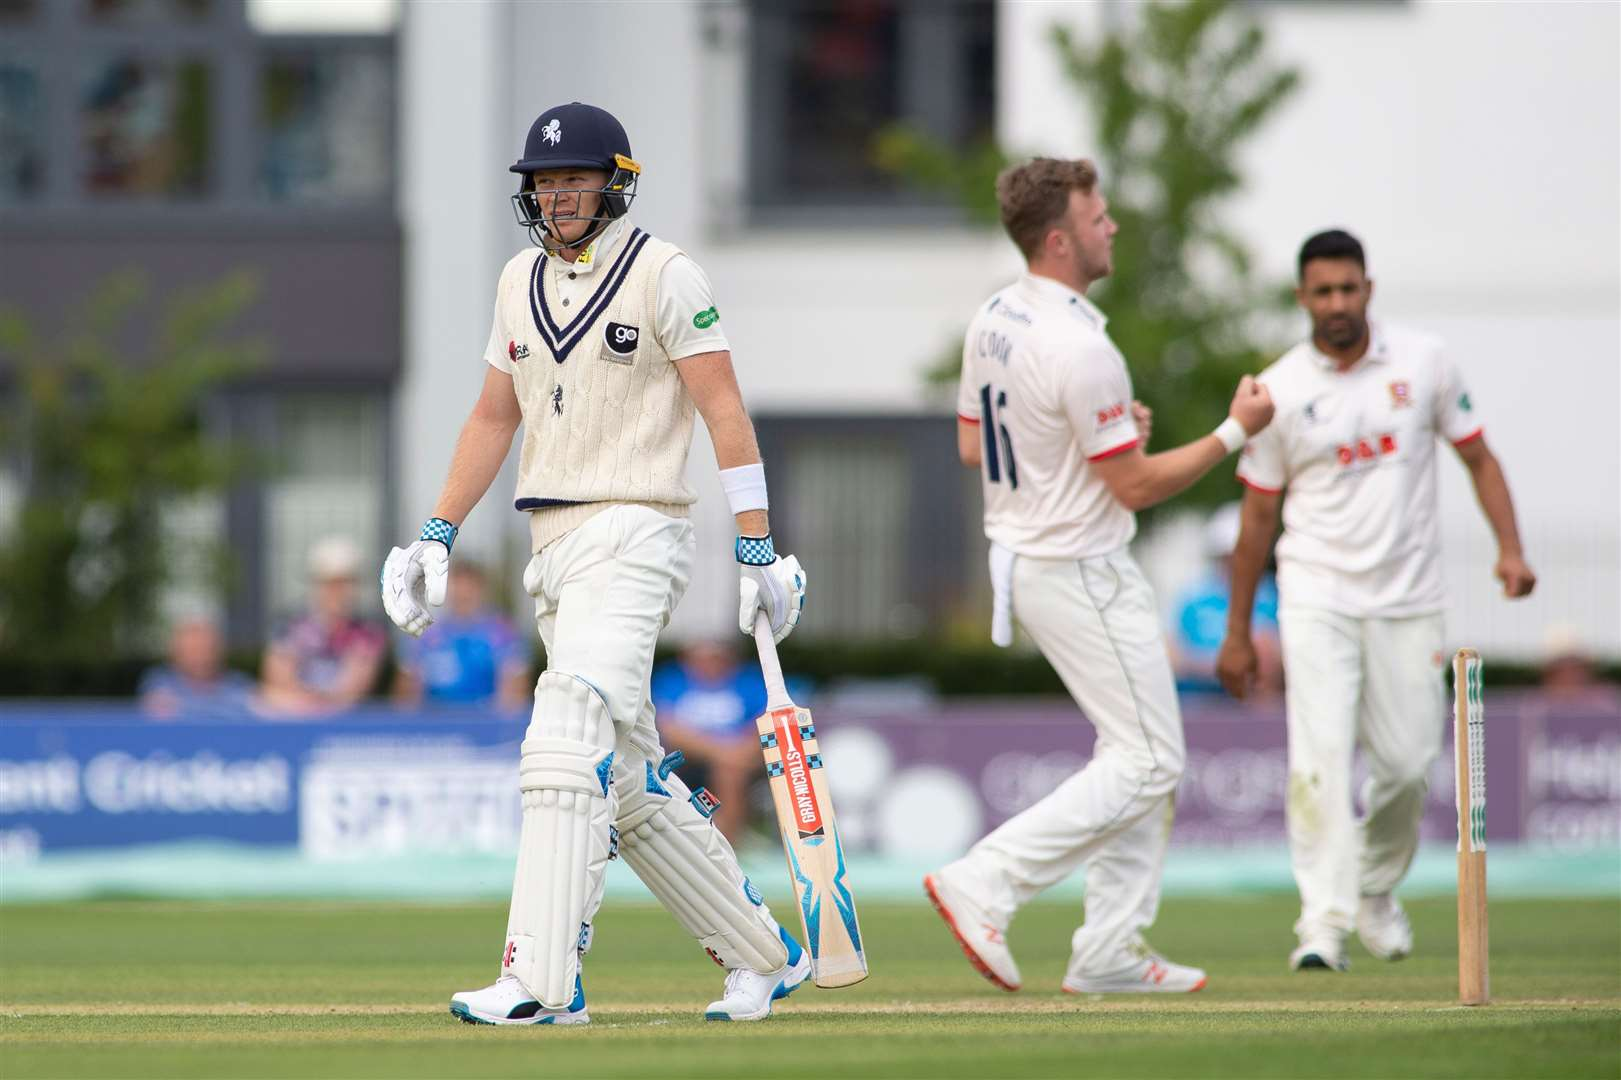 Kent's Sam Billings walks off after being beaten LBW to by Essex's Sam Cook. Picture: Ady Kerry